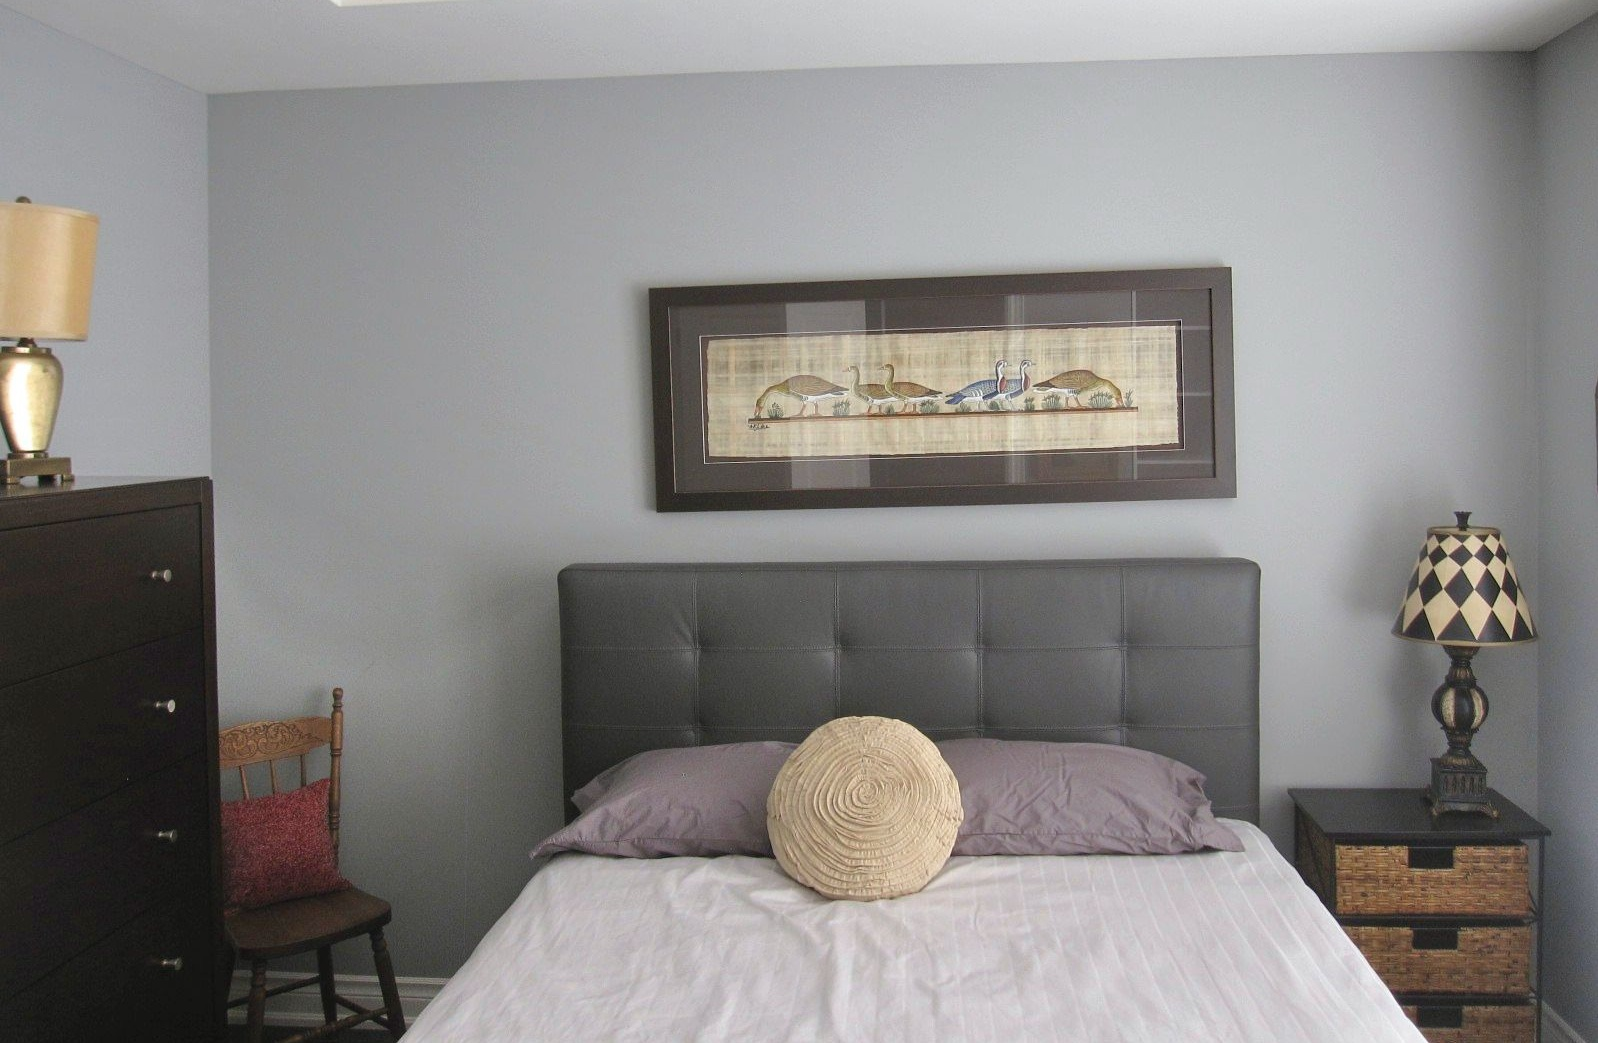 House for rent at 18 Algoma St, Etobicoke, ON. This is the bedroom.